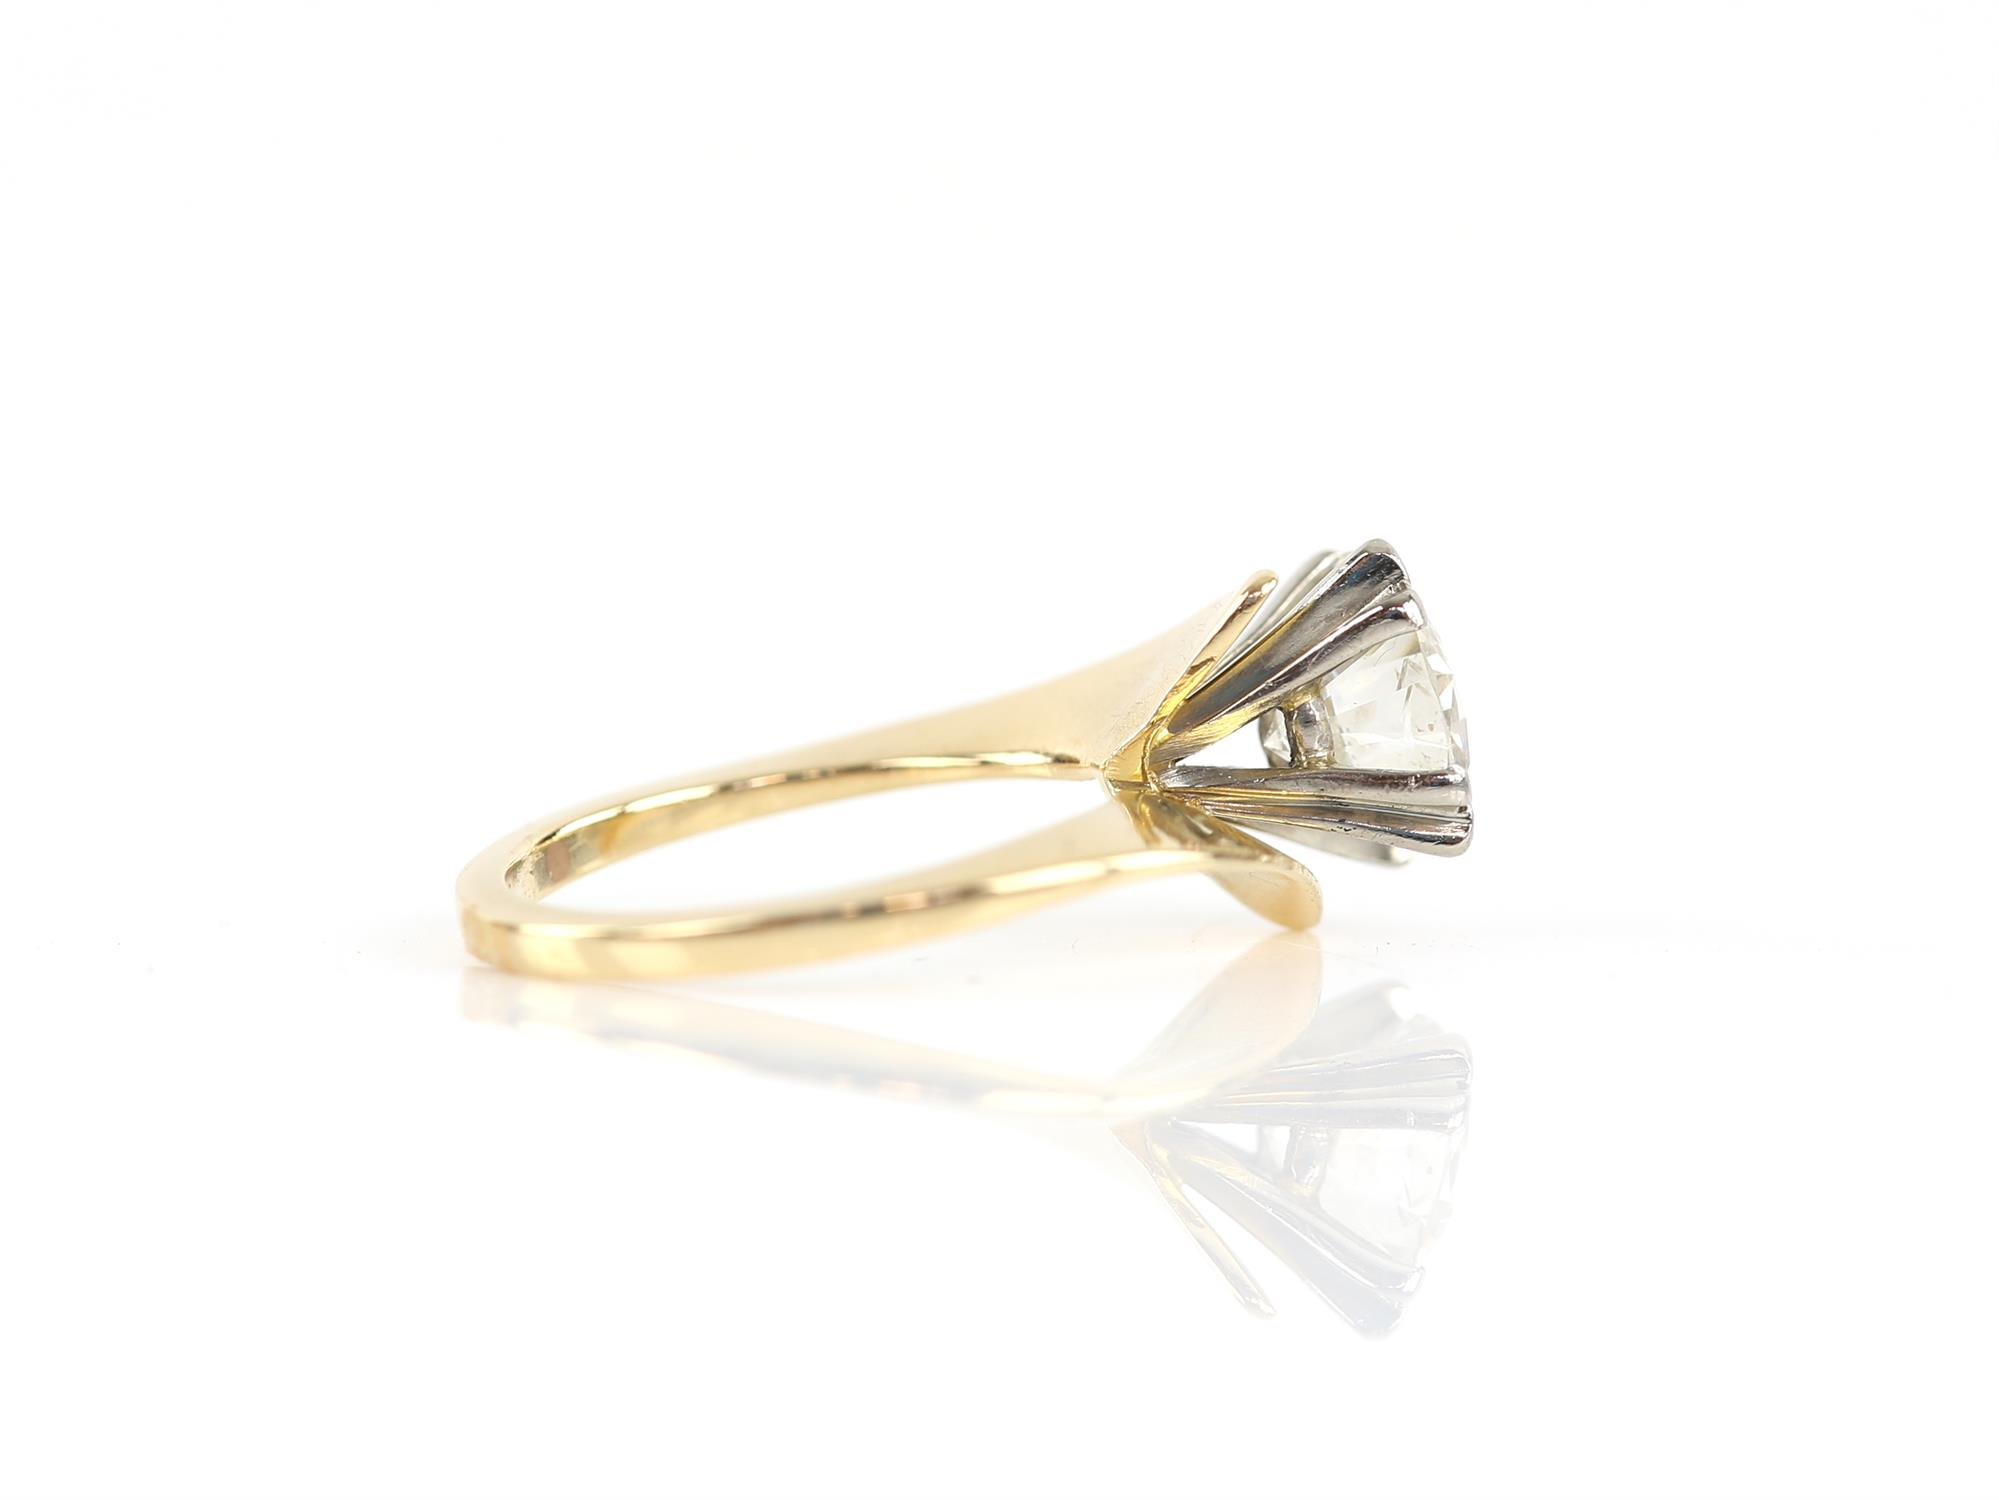 Single stone diamond ring, round brilliant cut diamond weighing an estimated 2.02 carats, - Image 3 of 6